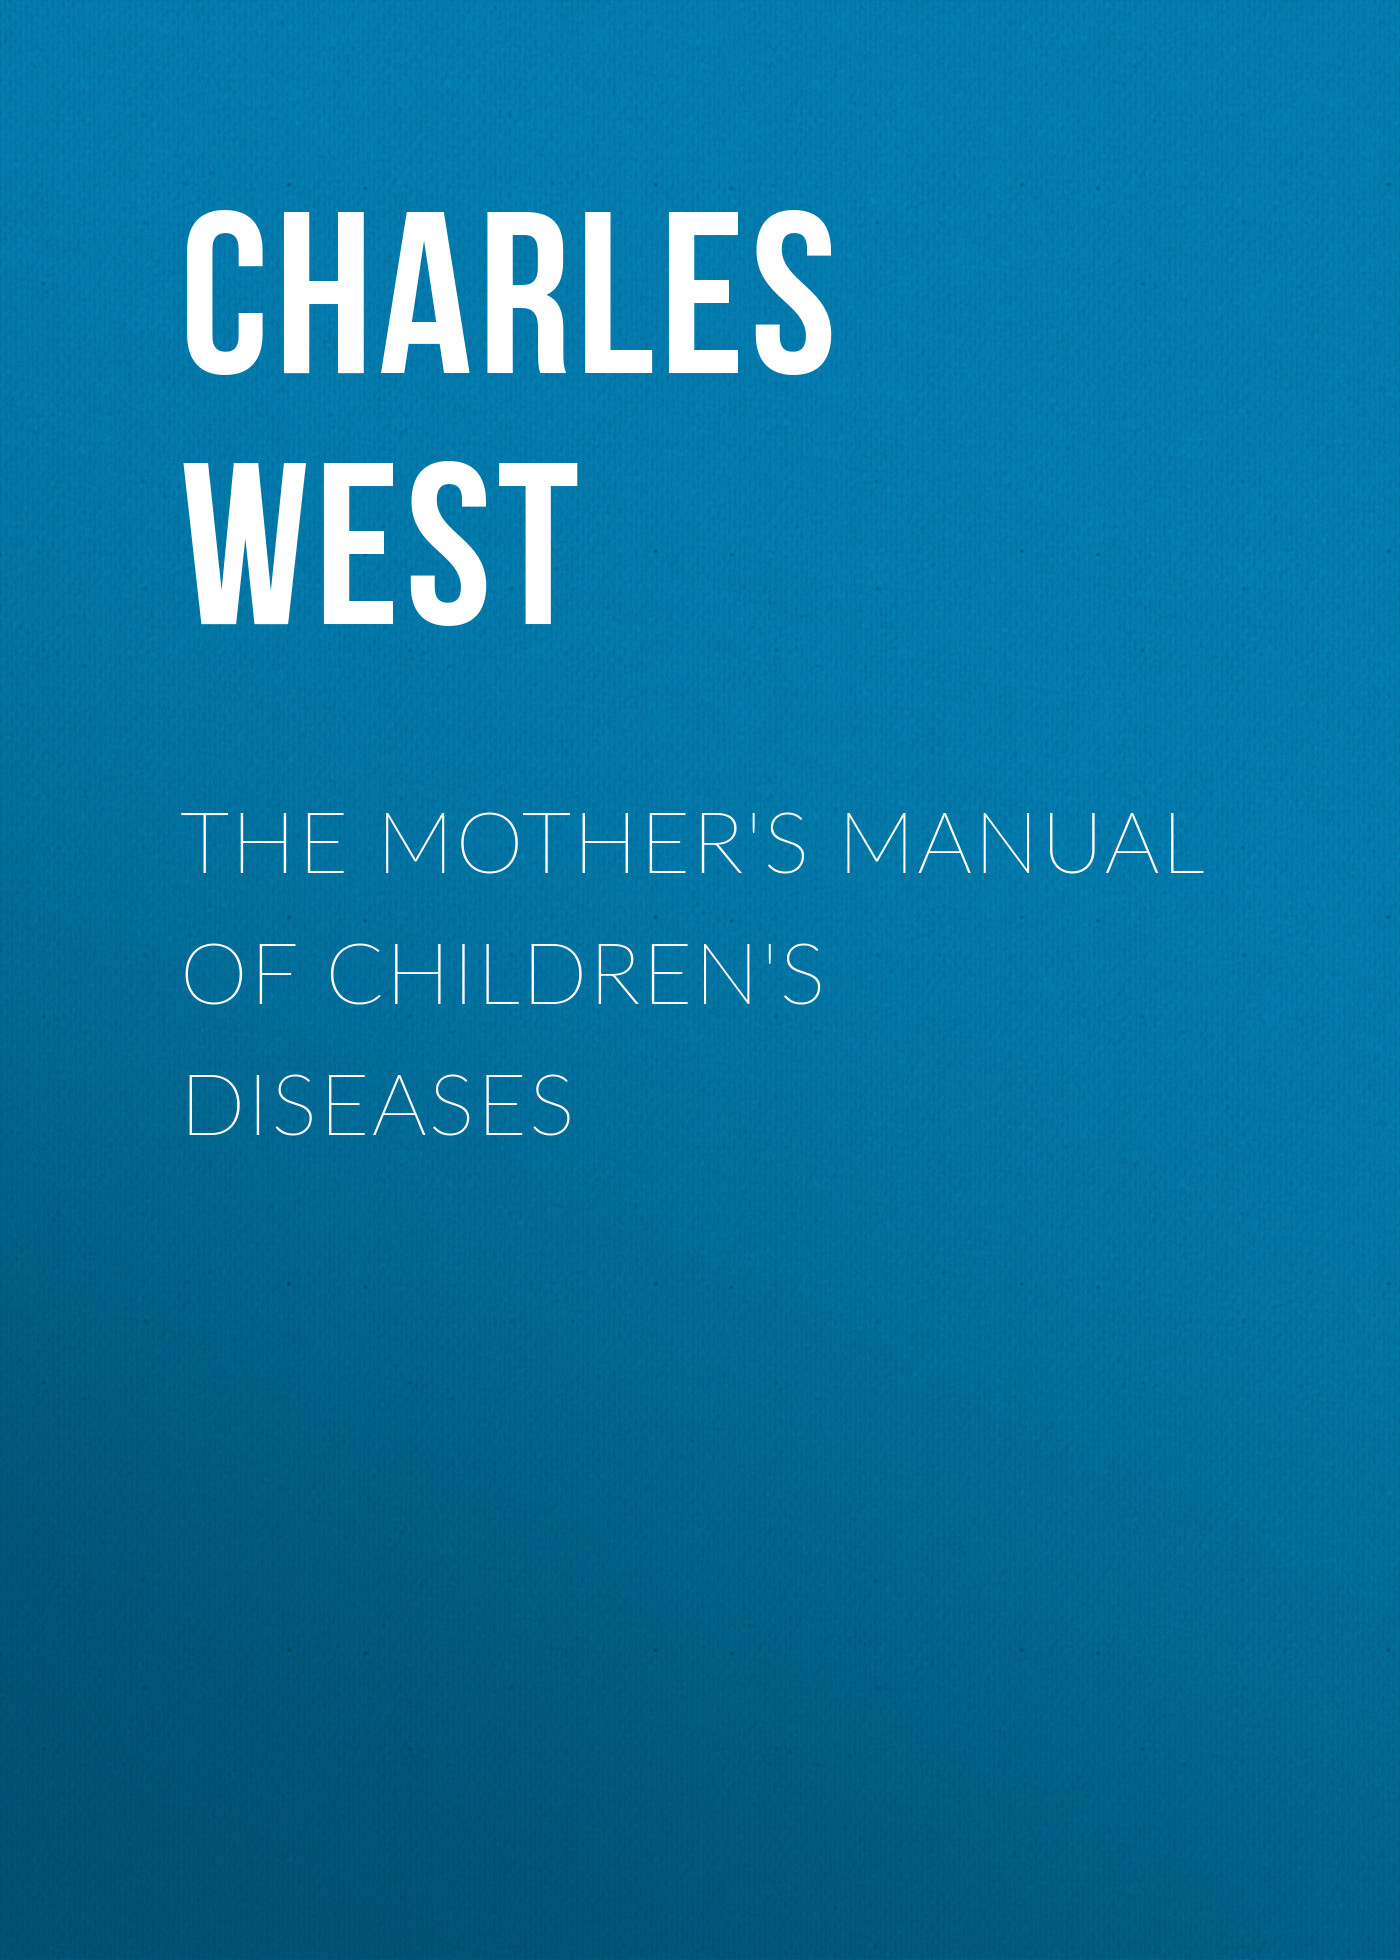 Charles West The Mother's Manual of Children's Diseases ethnomedicine for eye diseases